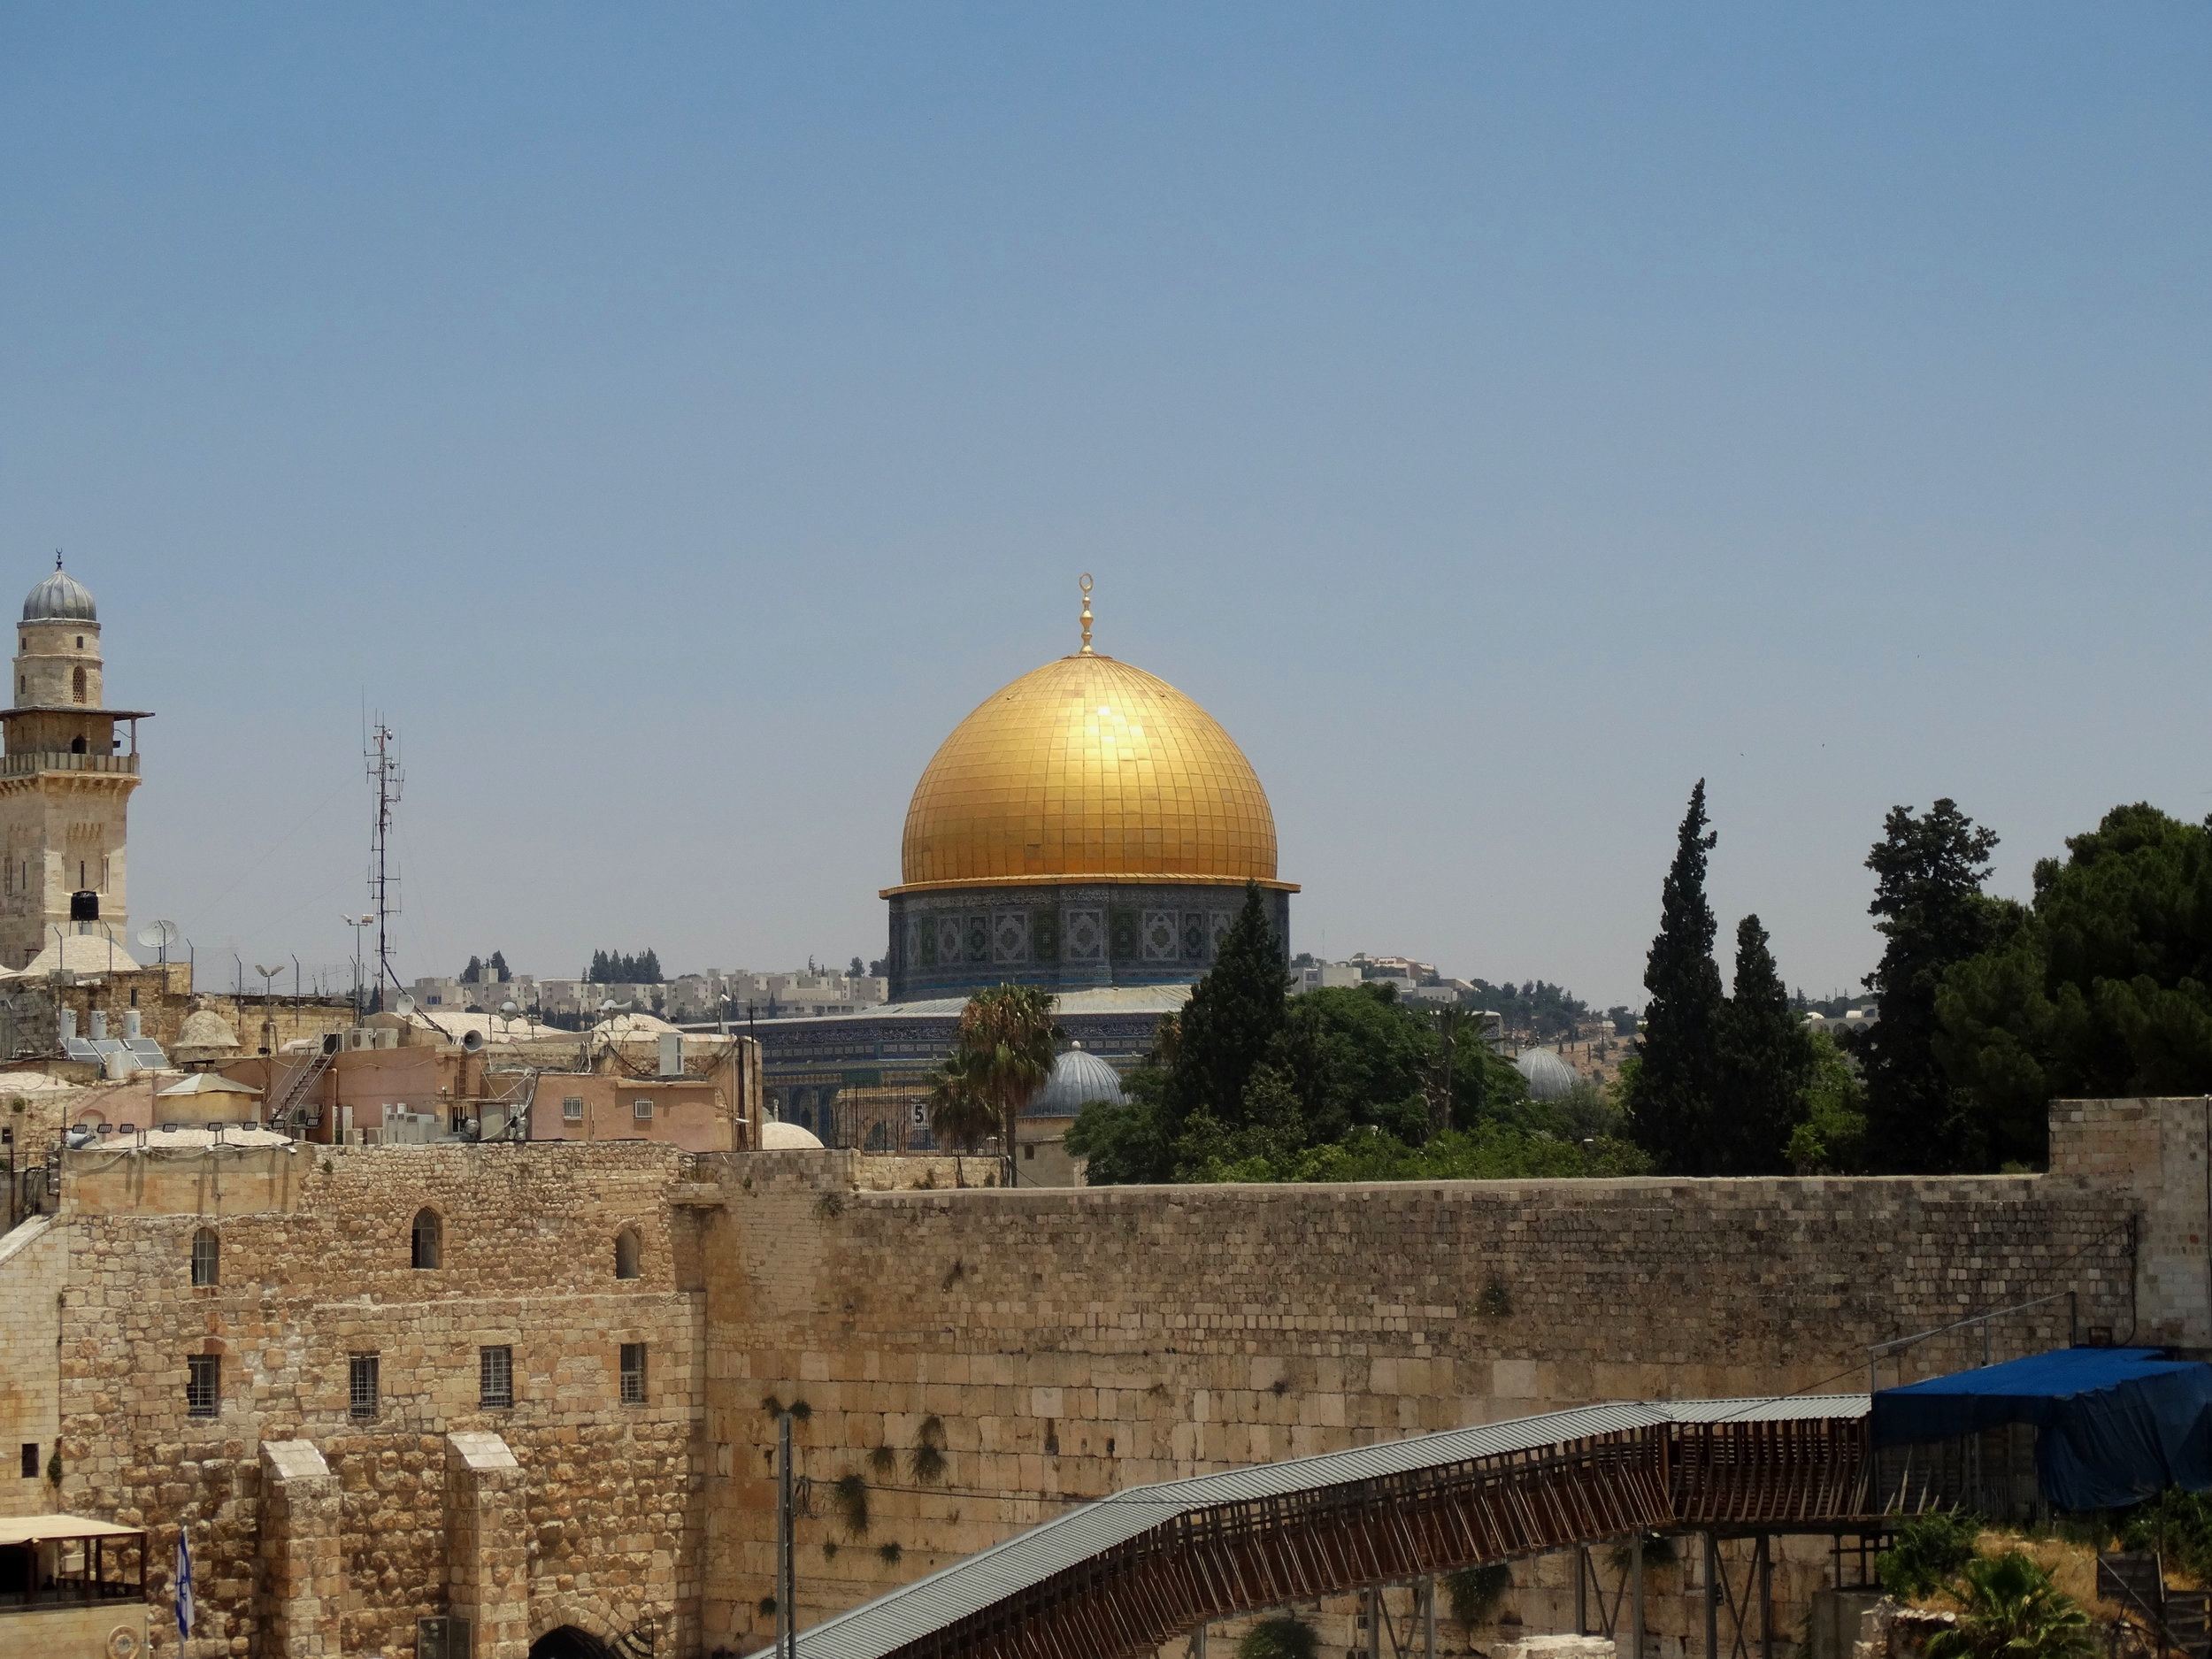 Dome of the Rock (built in 691 C.E.)